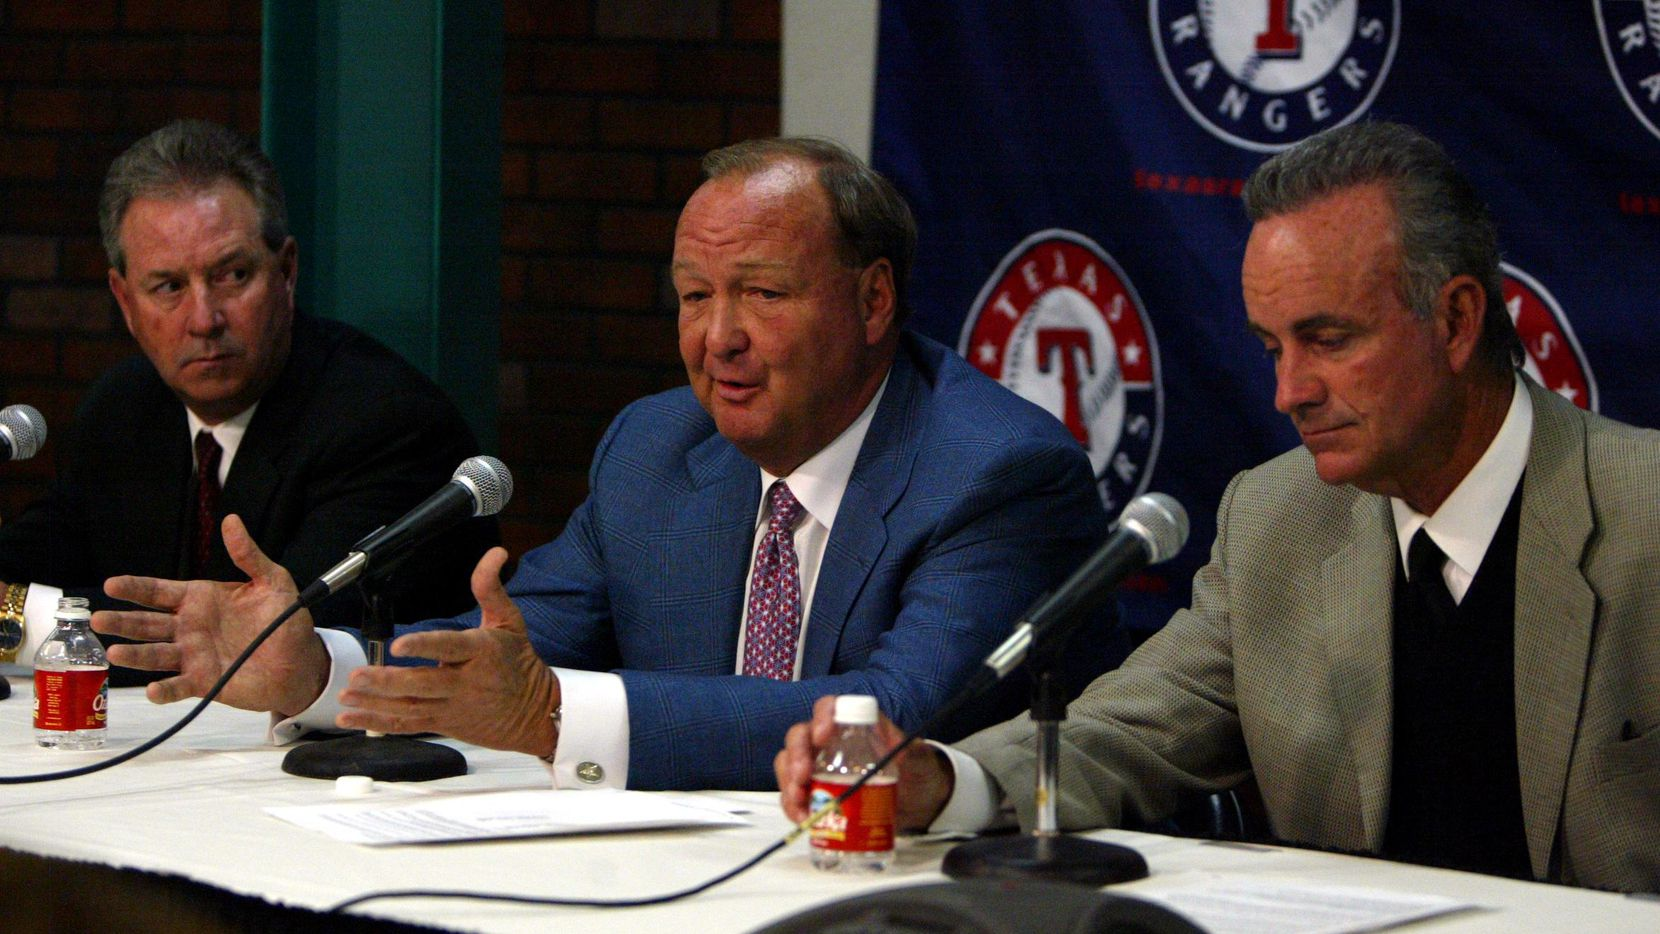 ORG XMIT: *S1851C4DA* Shot Monday,  February 16, 2004 --- DIGITAL # 64396 --- Texas Rangers Assistant General Manager Grady Fuson (left to right); Owner Tom Hicks and General Manager John Hart and speak at a press conference at the Ballpark in Arlington. They announced the trade of former Texas Rangers shortstop Alex Rodriguez to the New York Yankees for second baseman Alfonso Soriano and a player to be named later.